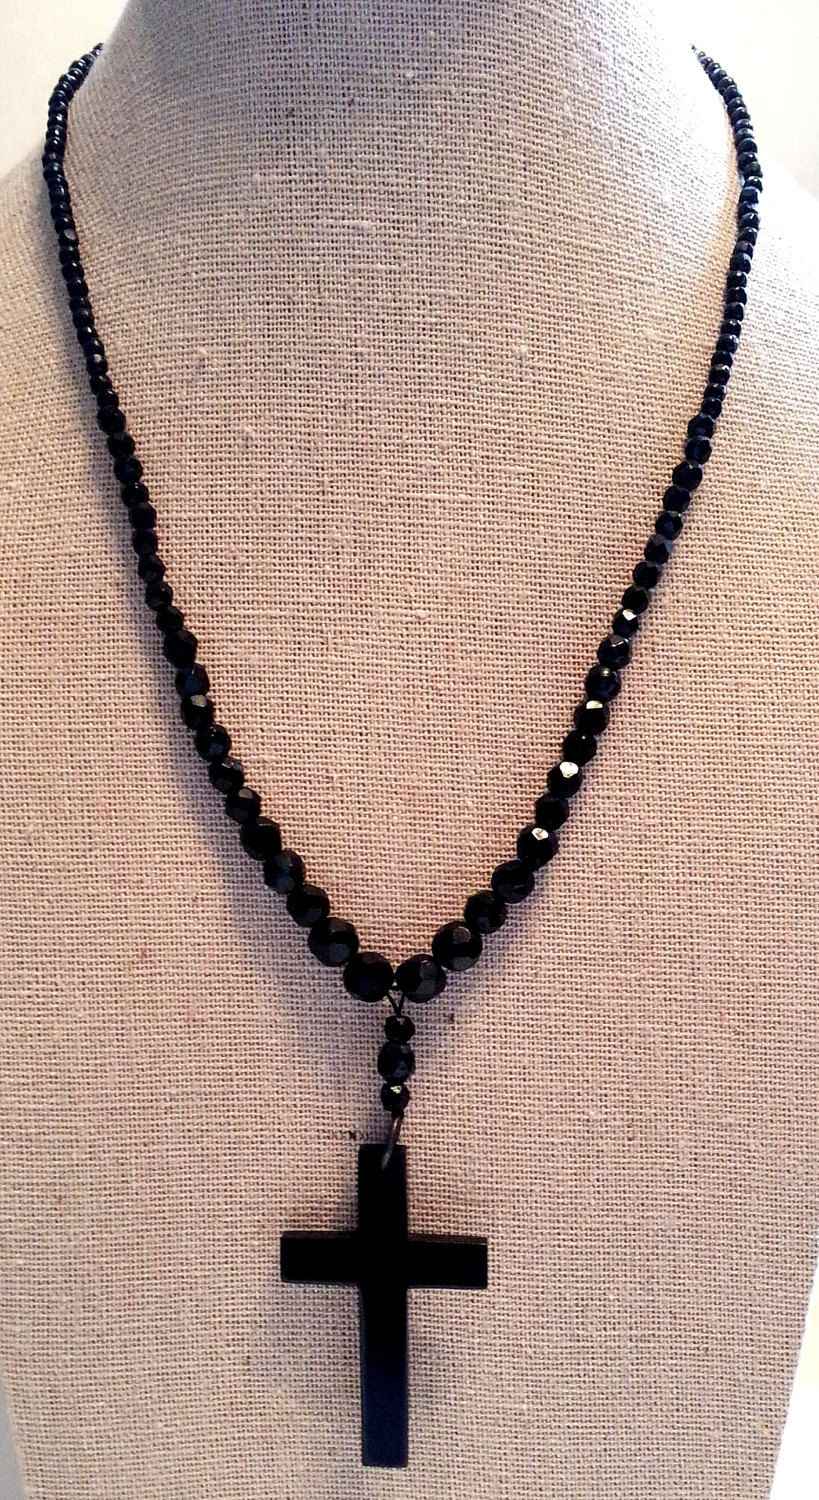 Vintage Black Cross Beaded Necklace, Religious Mourning Rosary Jewelry, Gifts #rosaryjewelry